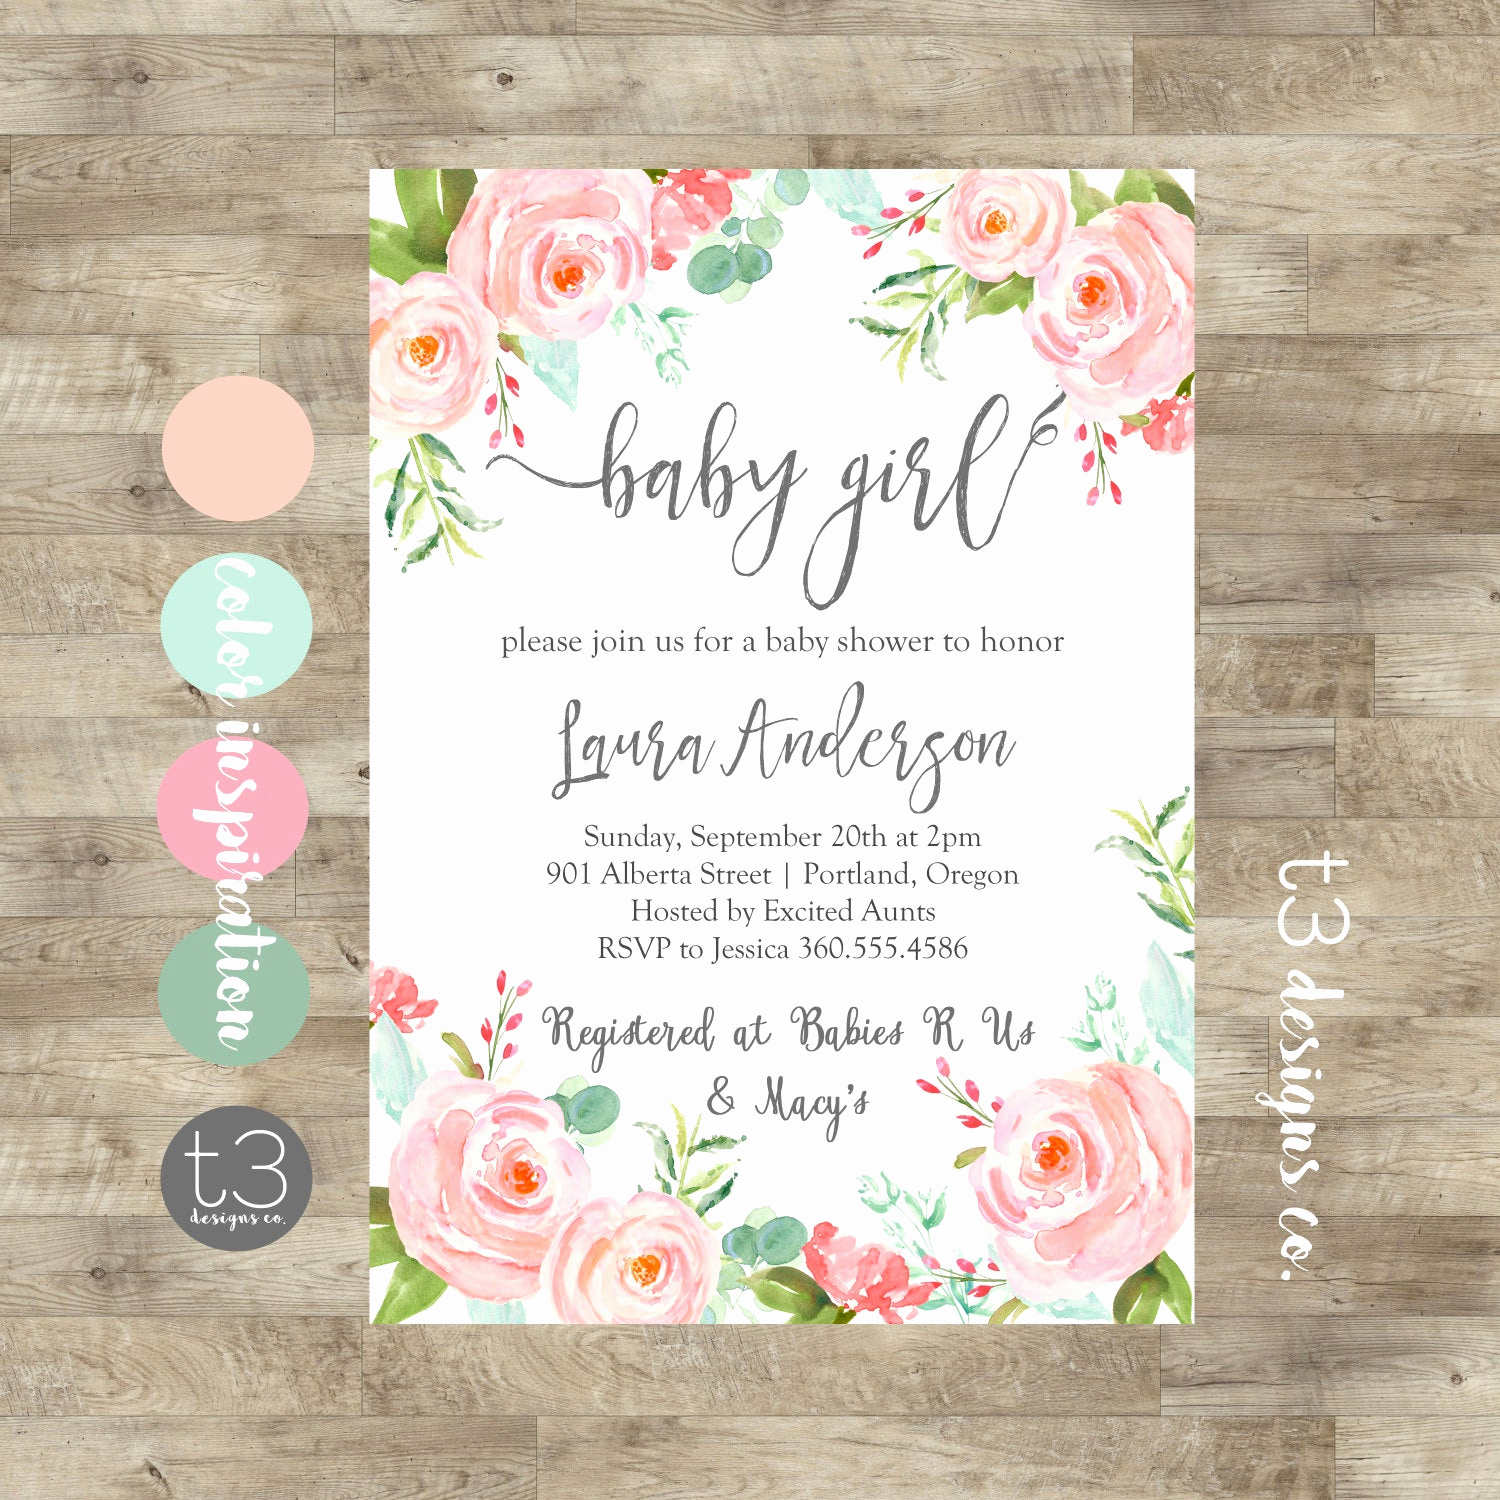 Baby Shower Invitation for Girl New Floral Girl Baby Shower Invitation Baby Girl Shower Invite